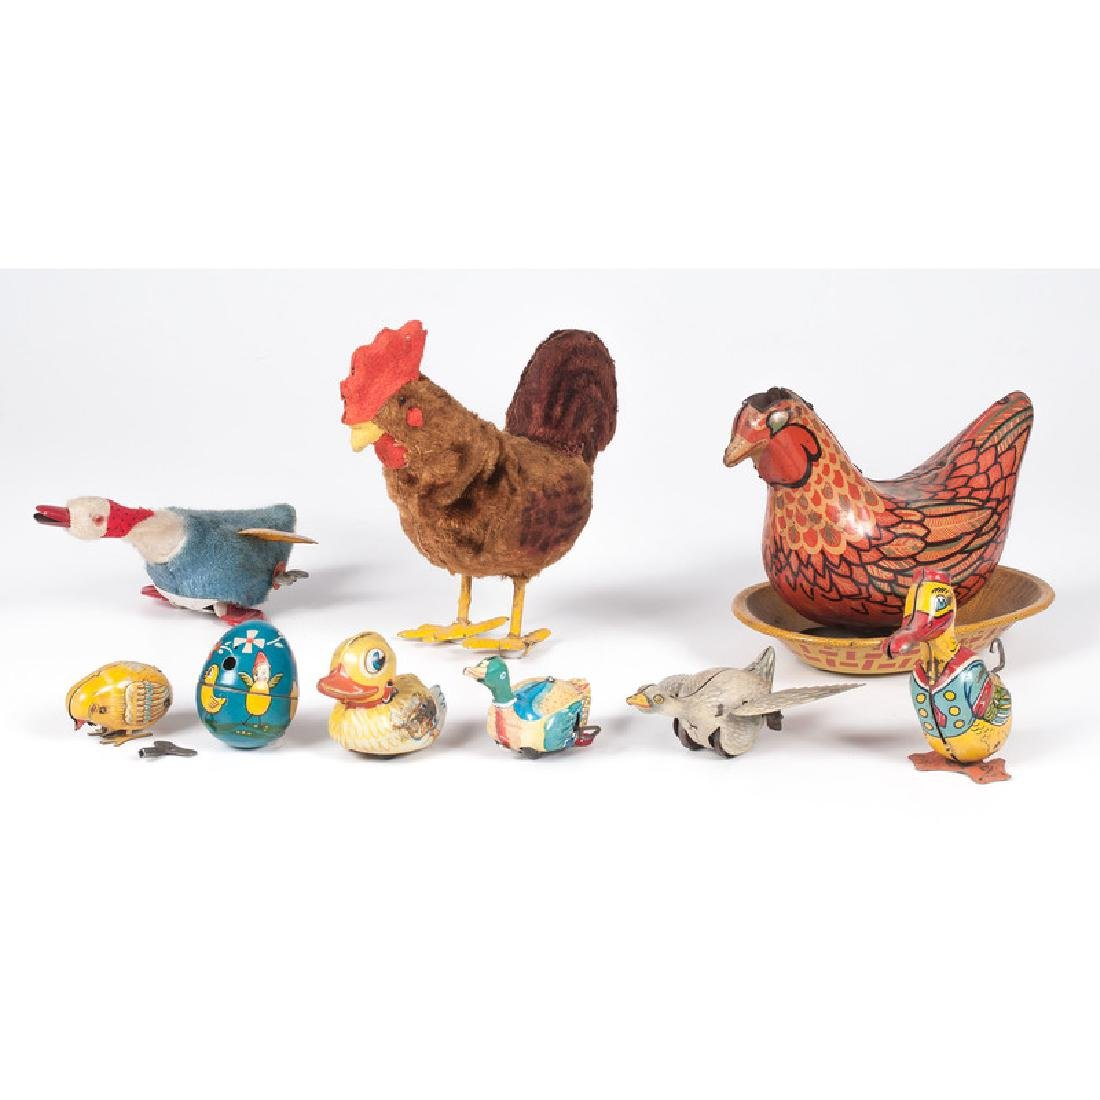 Mechanical Chickens, Ducks, and Geese